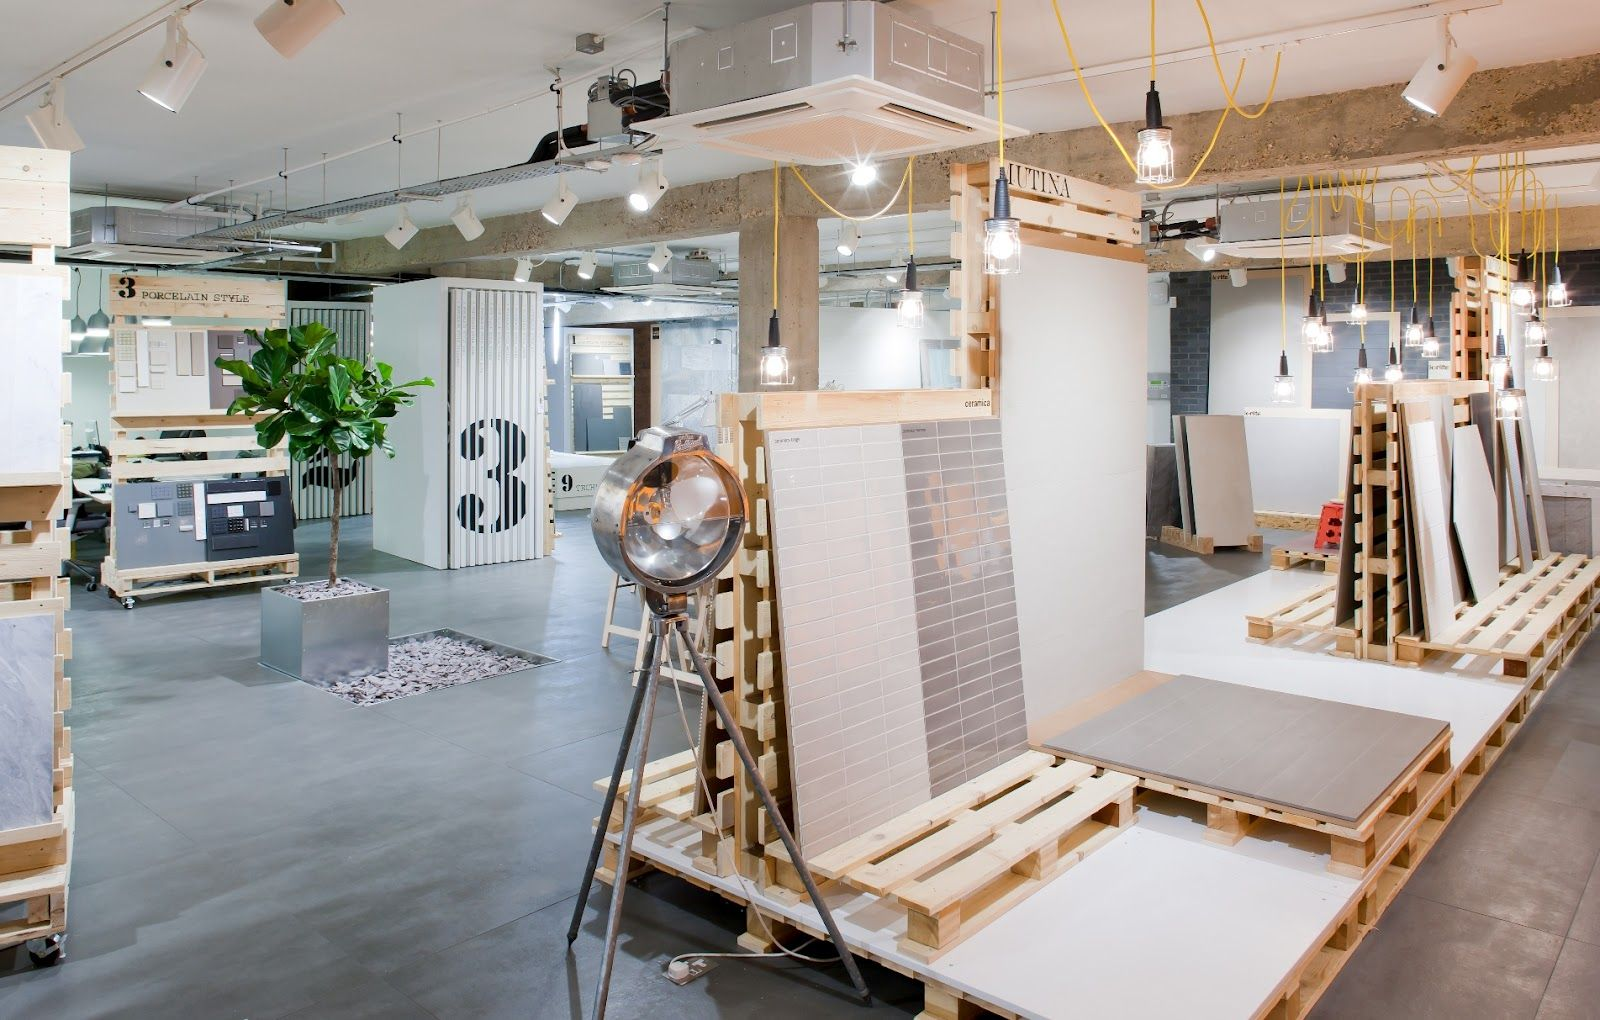 Knauf press office domus chooses gifafloor for flagship showroom knauf press office domus chooses gifafloor for flagship showroom dailygadgetfo Gallery